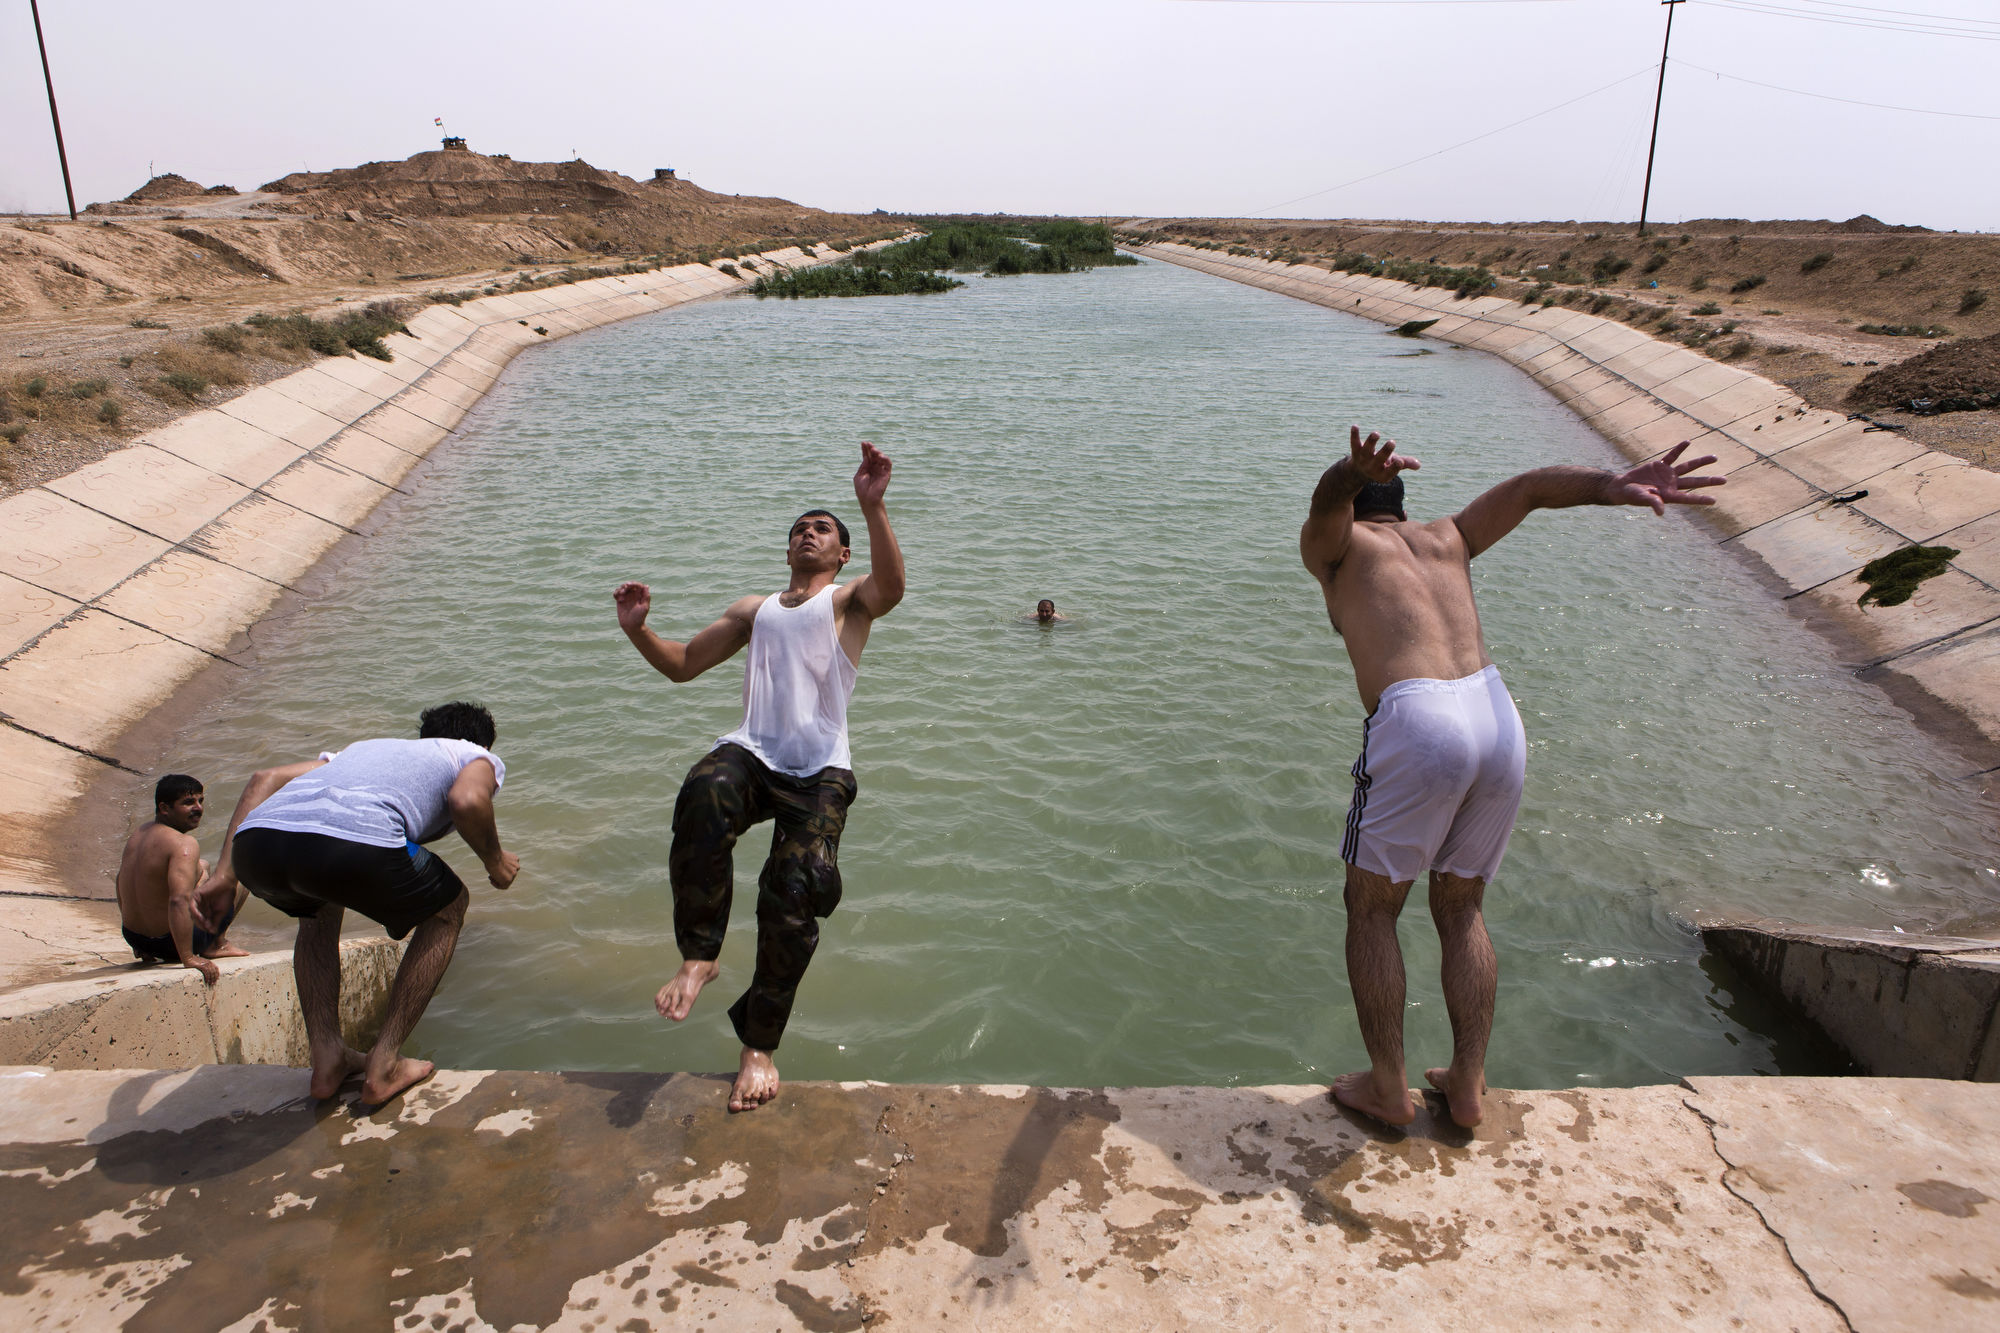 Peshmerga swim in an irrigation canal at a front line position.